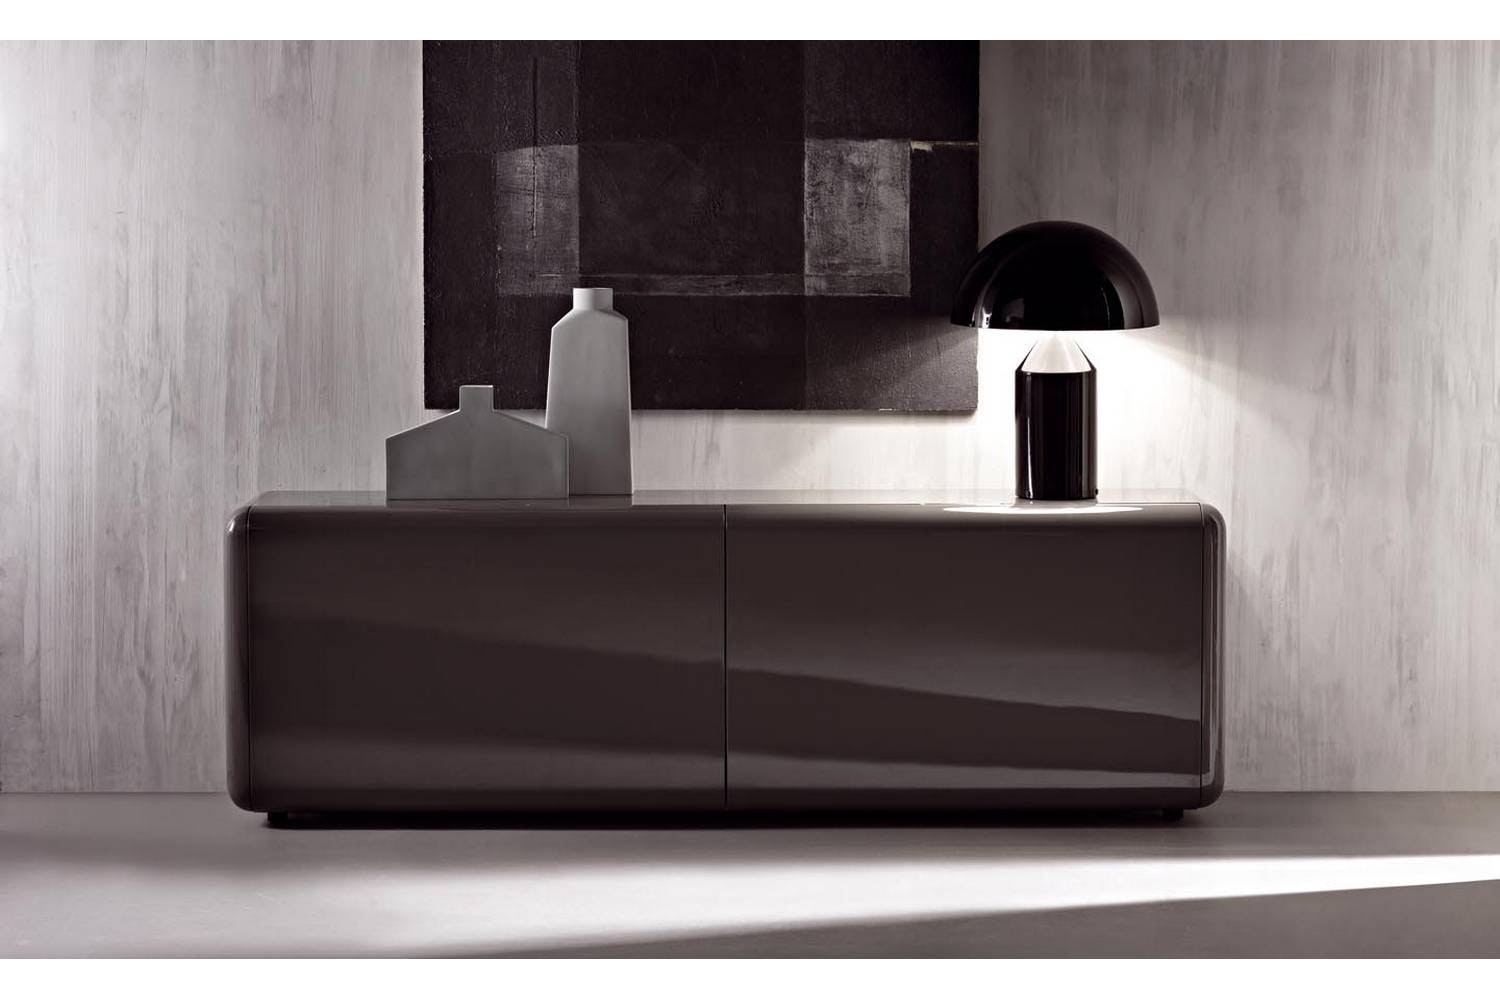 Superego Sideboard by Marco Acerbis for Acerbis